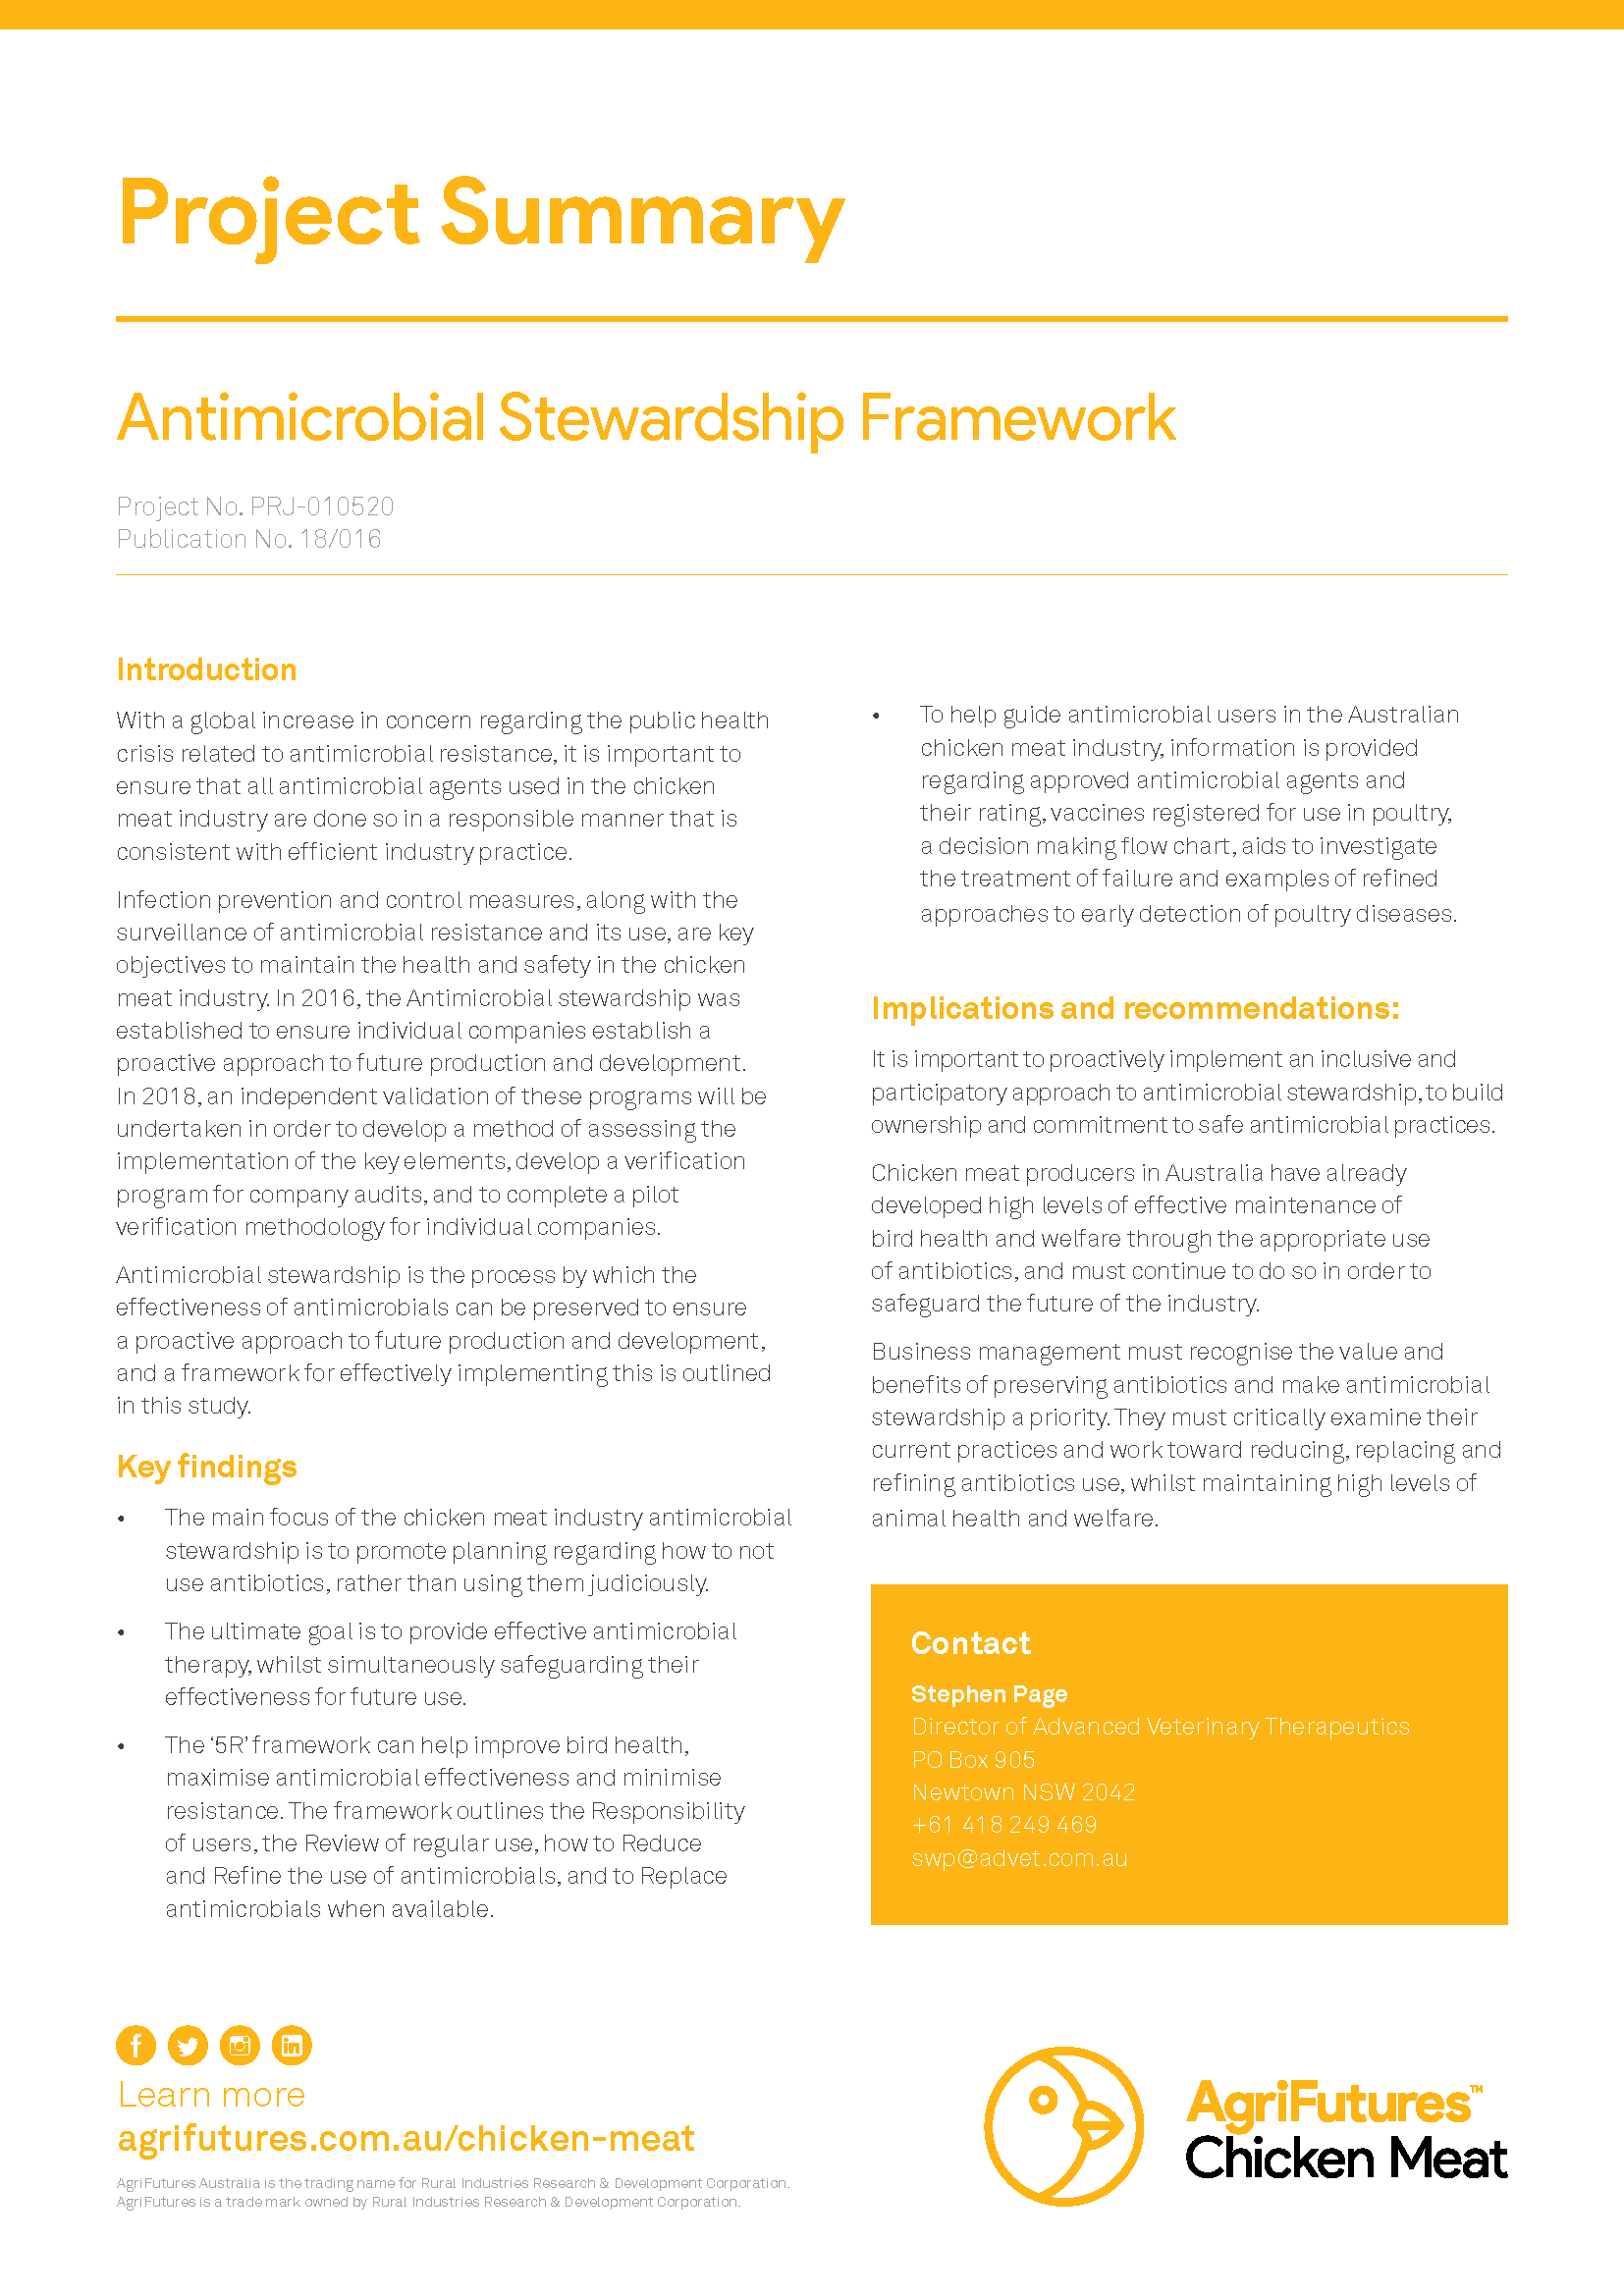 Project Summary: Antimicrobial Stewardship Framework - image